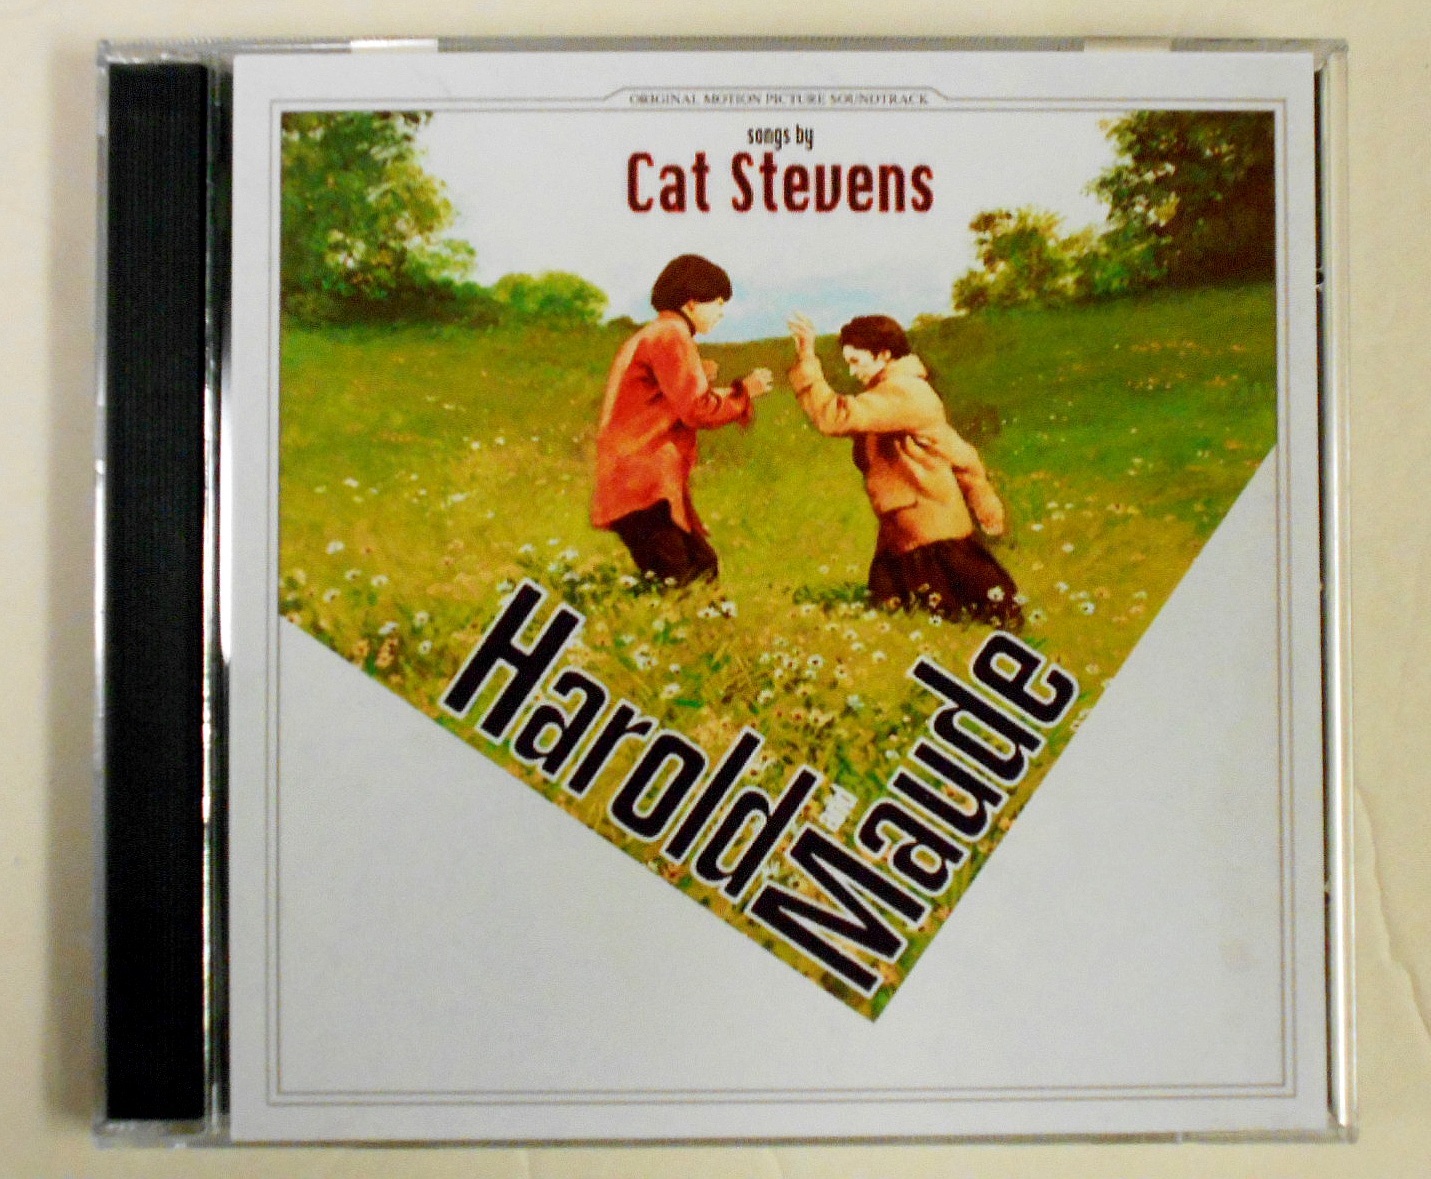 Harold   maude cd cover to post